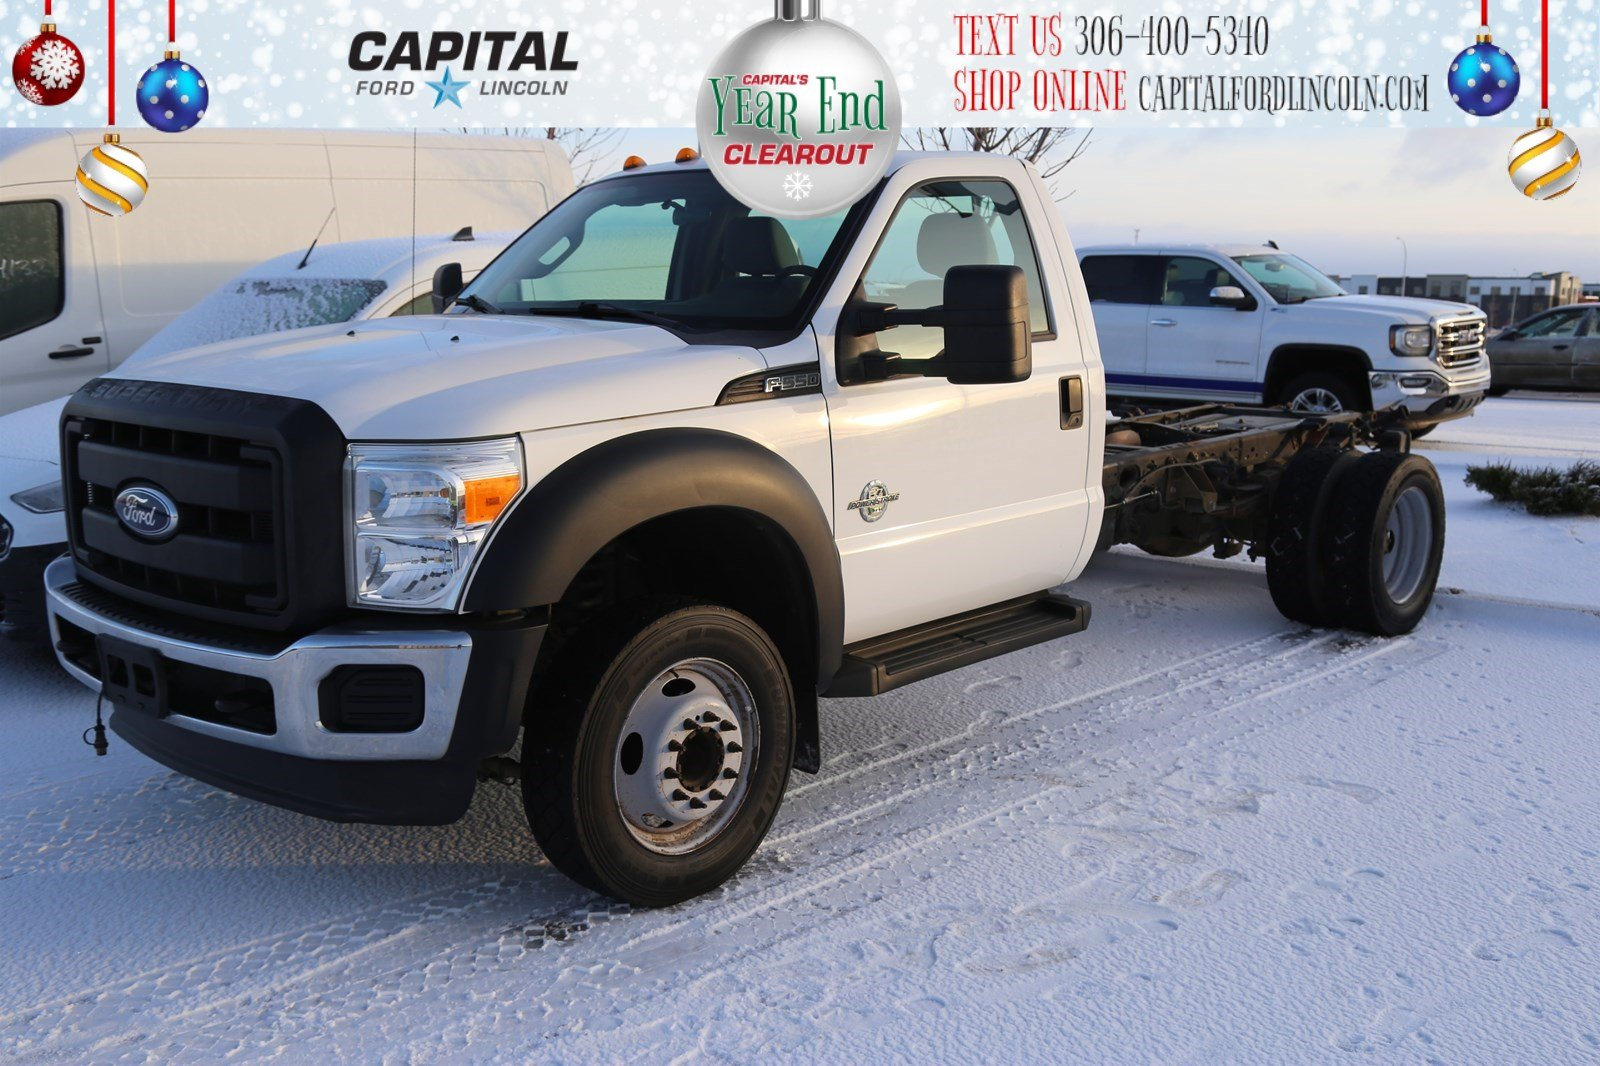 Pre-Owned 2012 Ford Super Duty F-550 DRW Regular Cab Chassis-Cab